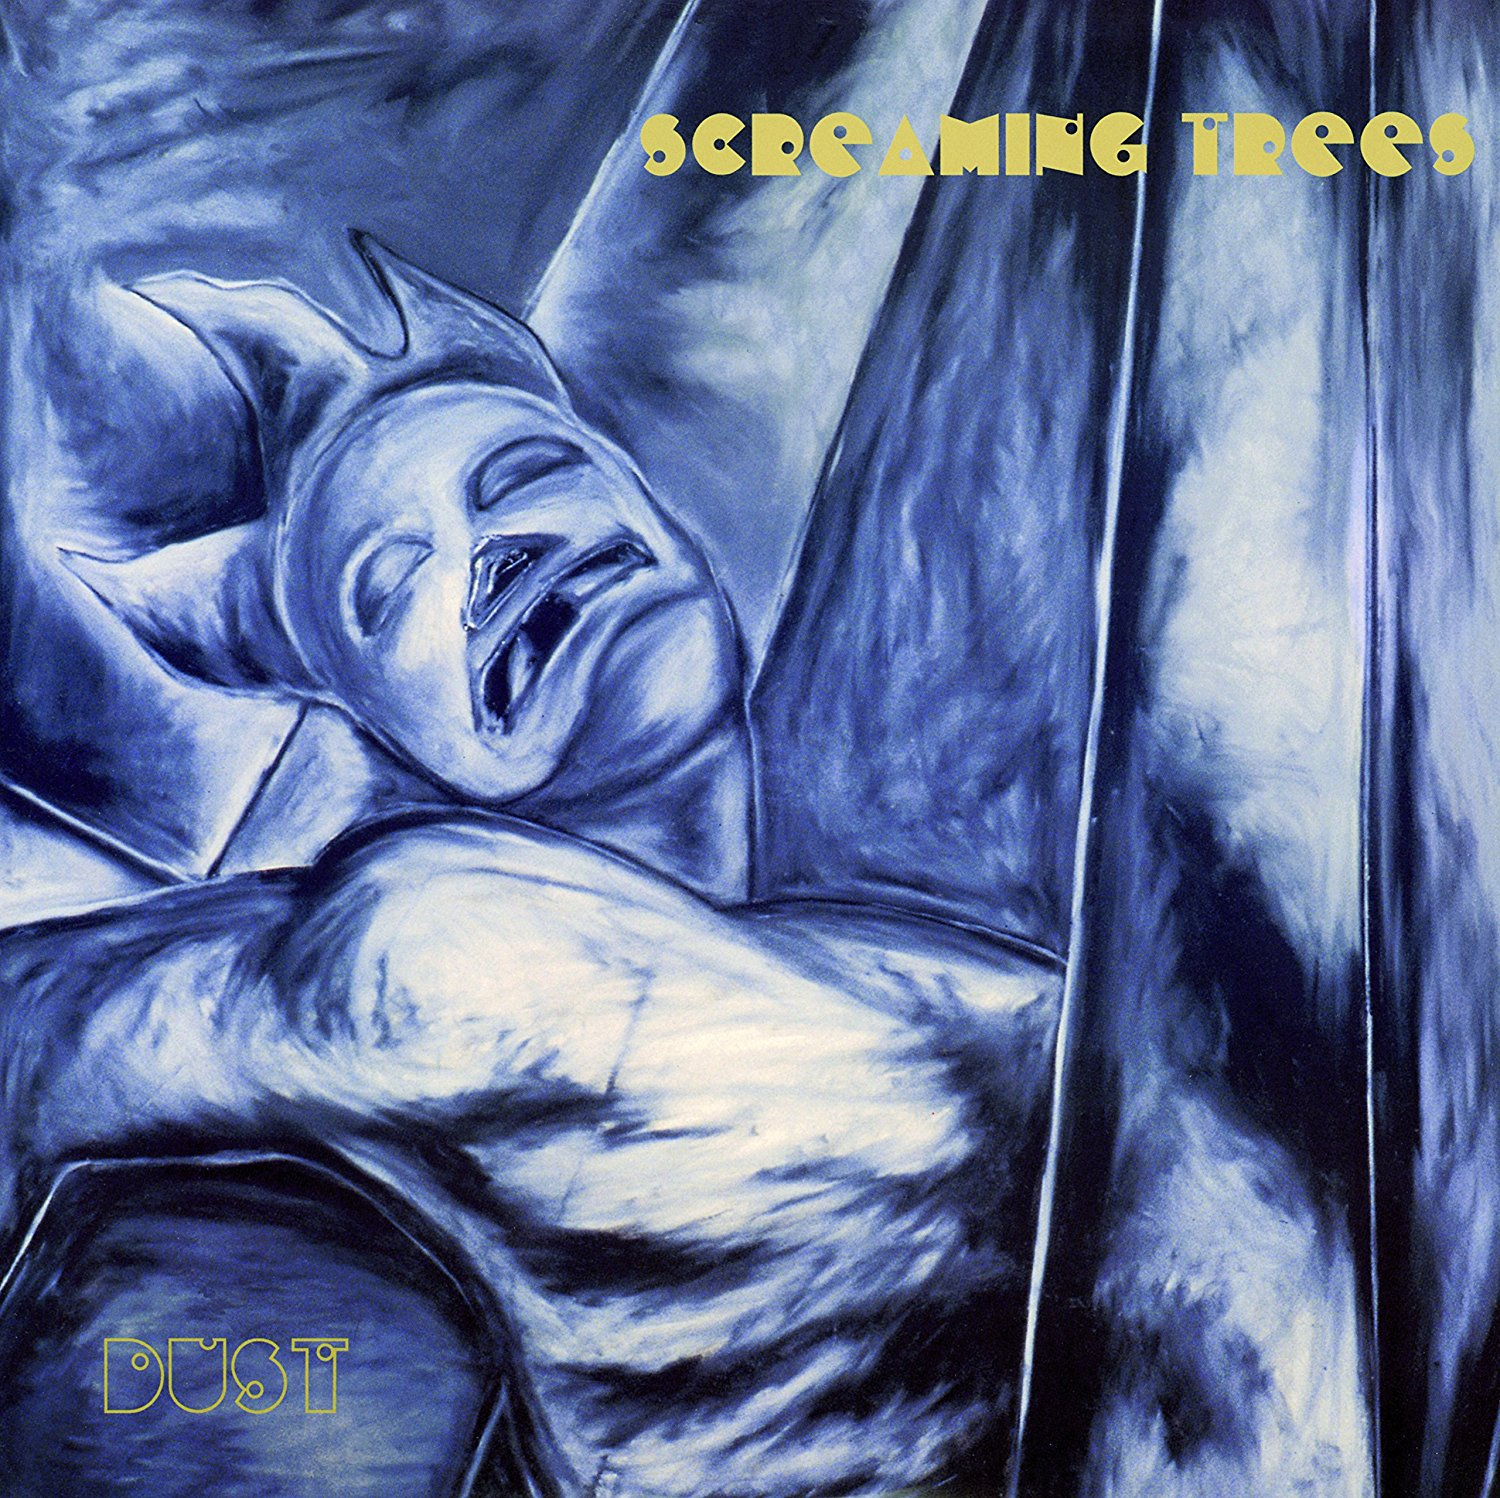 Screaming Trees – Dust (Deluxe Re-issue) (Cherry Red)